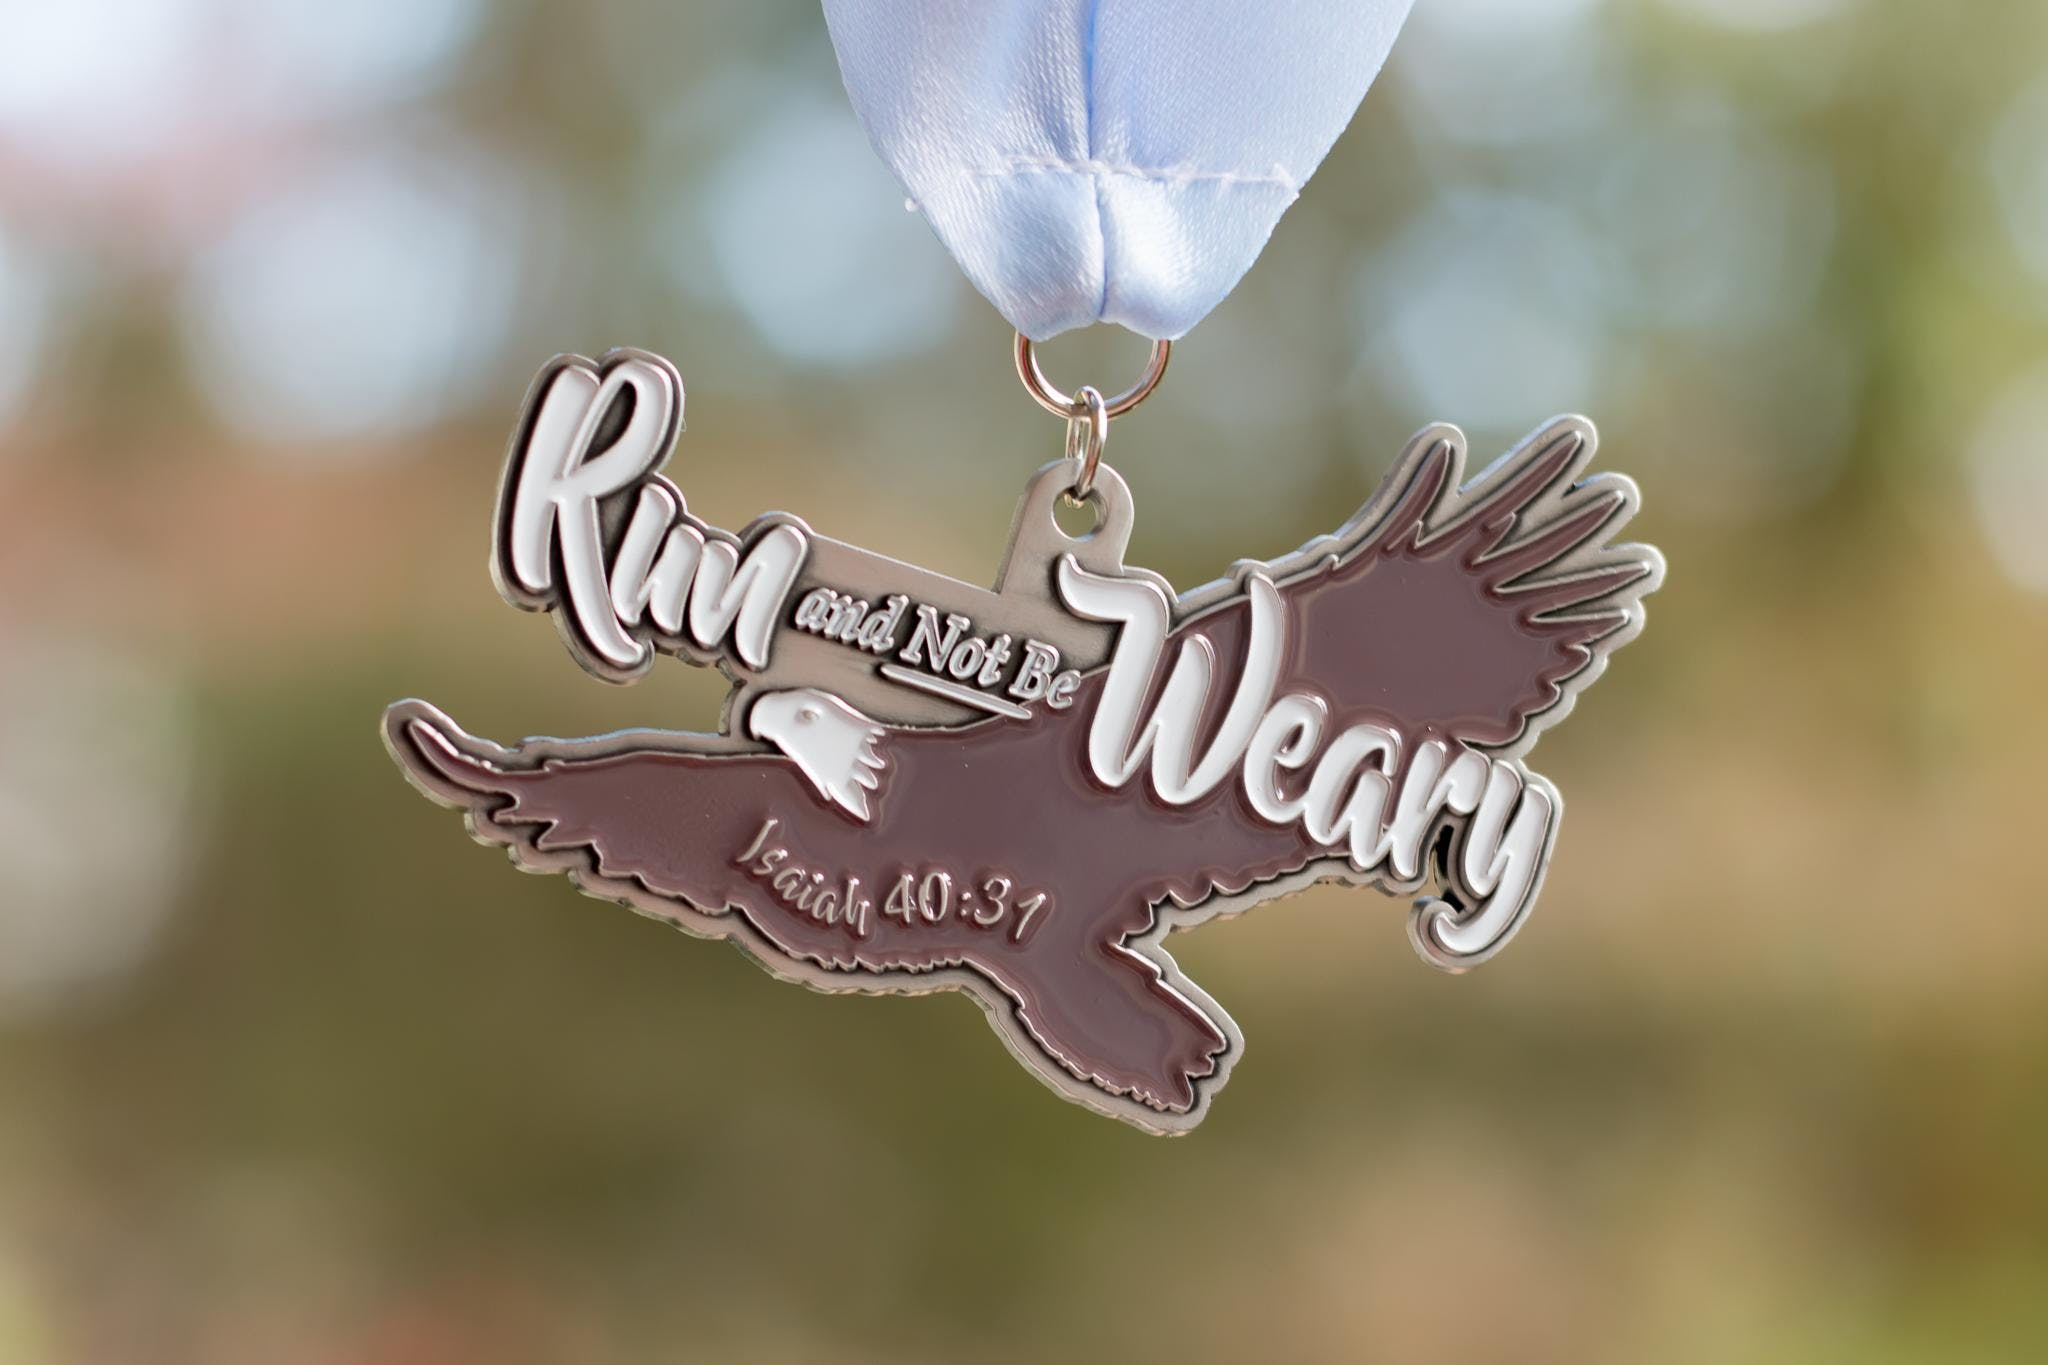 2019 The Run and Not Be Weary 1 Mile, 5K, 10K, 13.1, 26.2 - Syracuse